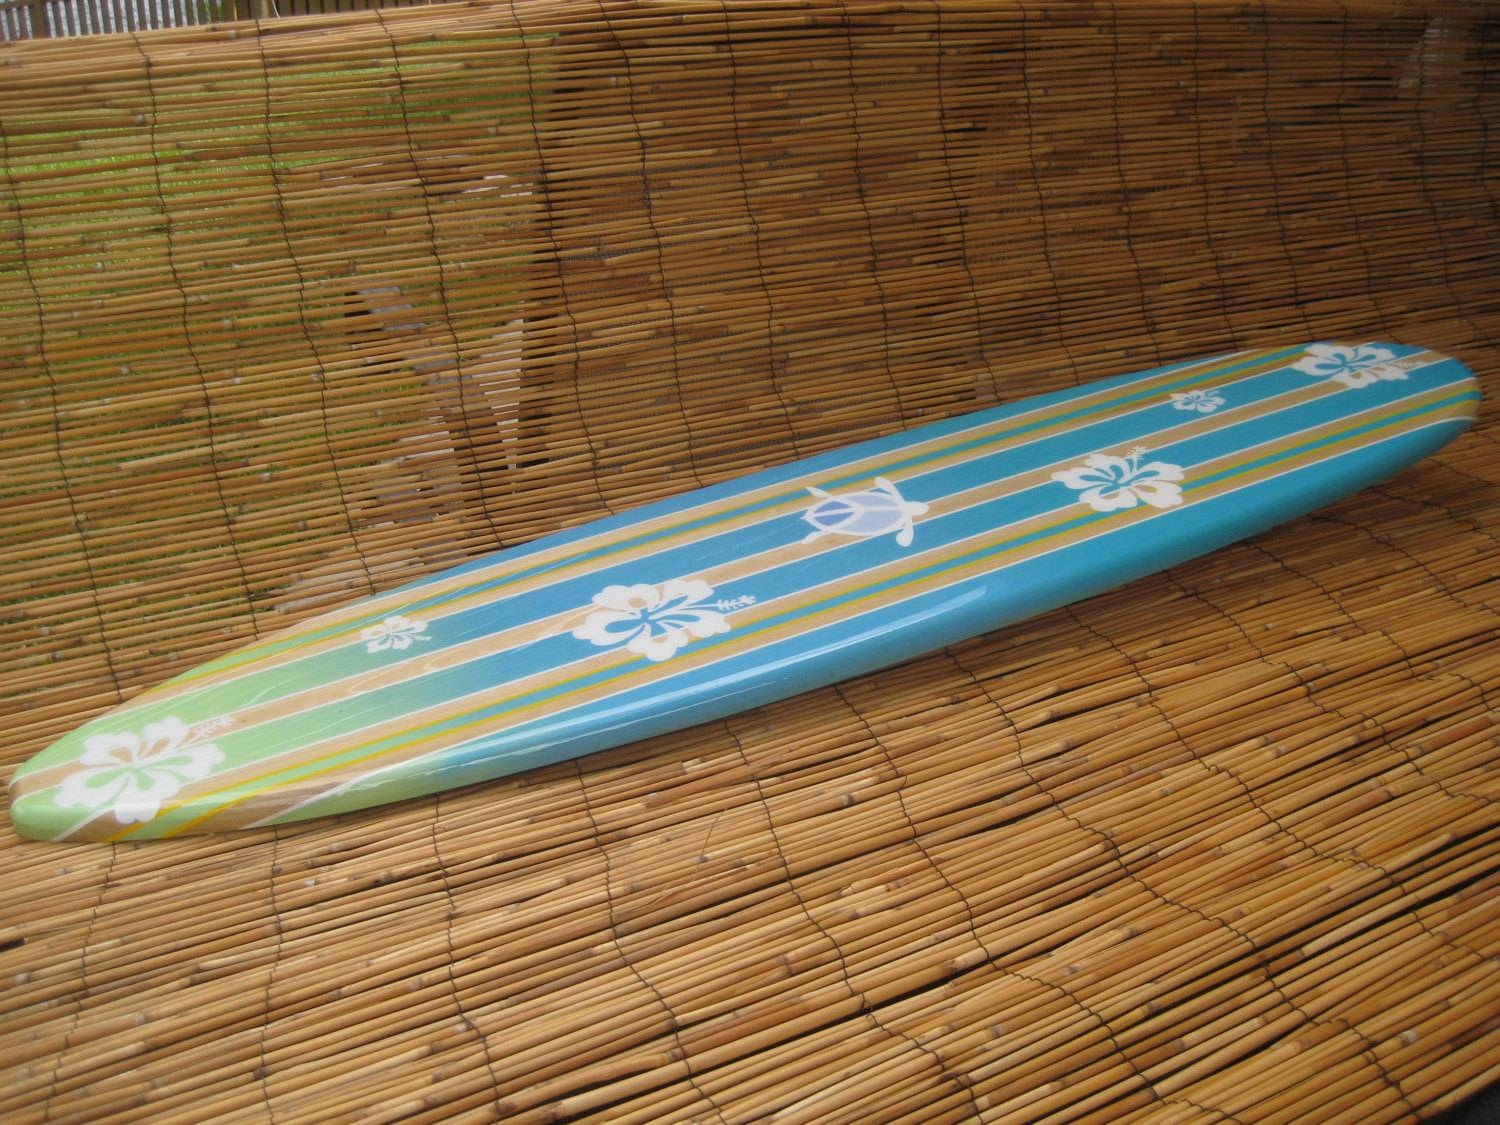 Decorative Wooden Surfboard Wall Art For A Hotel Restaurant With Regard To Best And Newest Decorative Surfboard Wall Art (View 13 of 25)